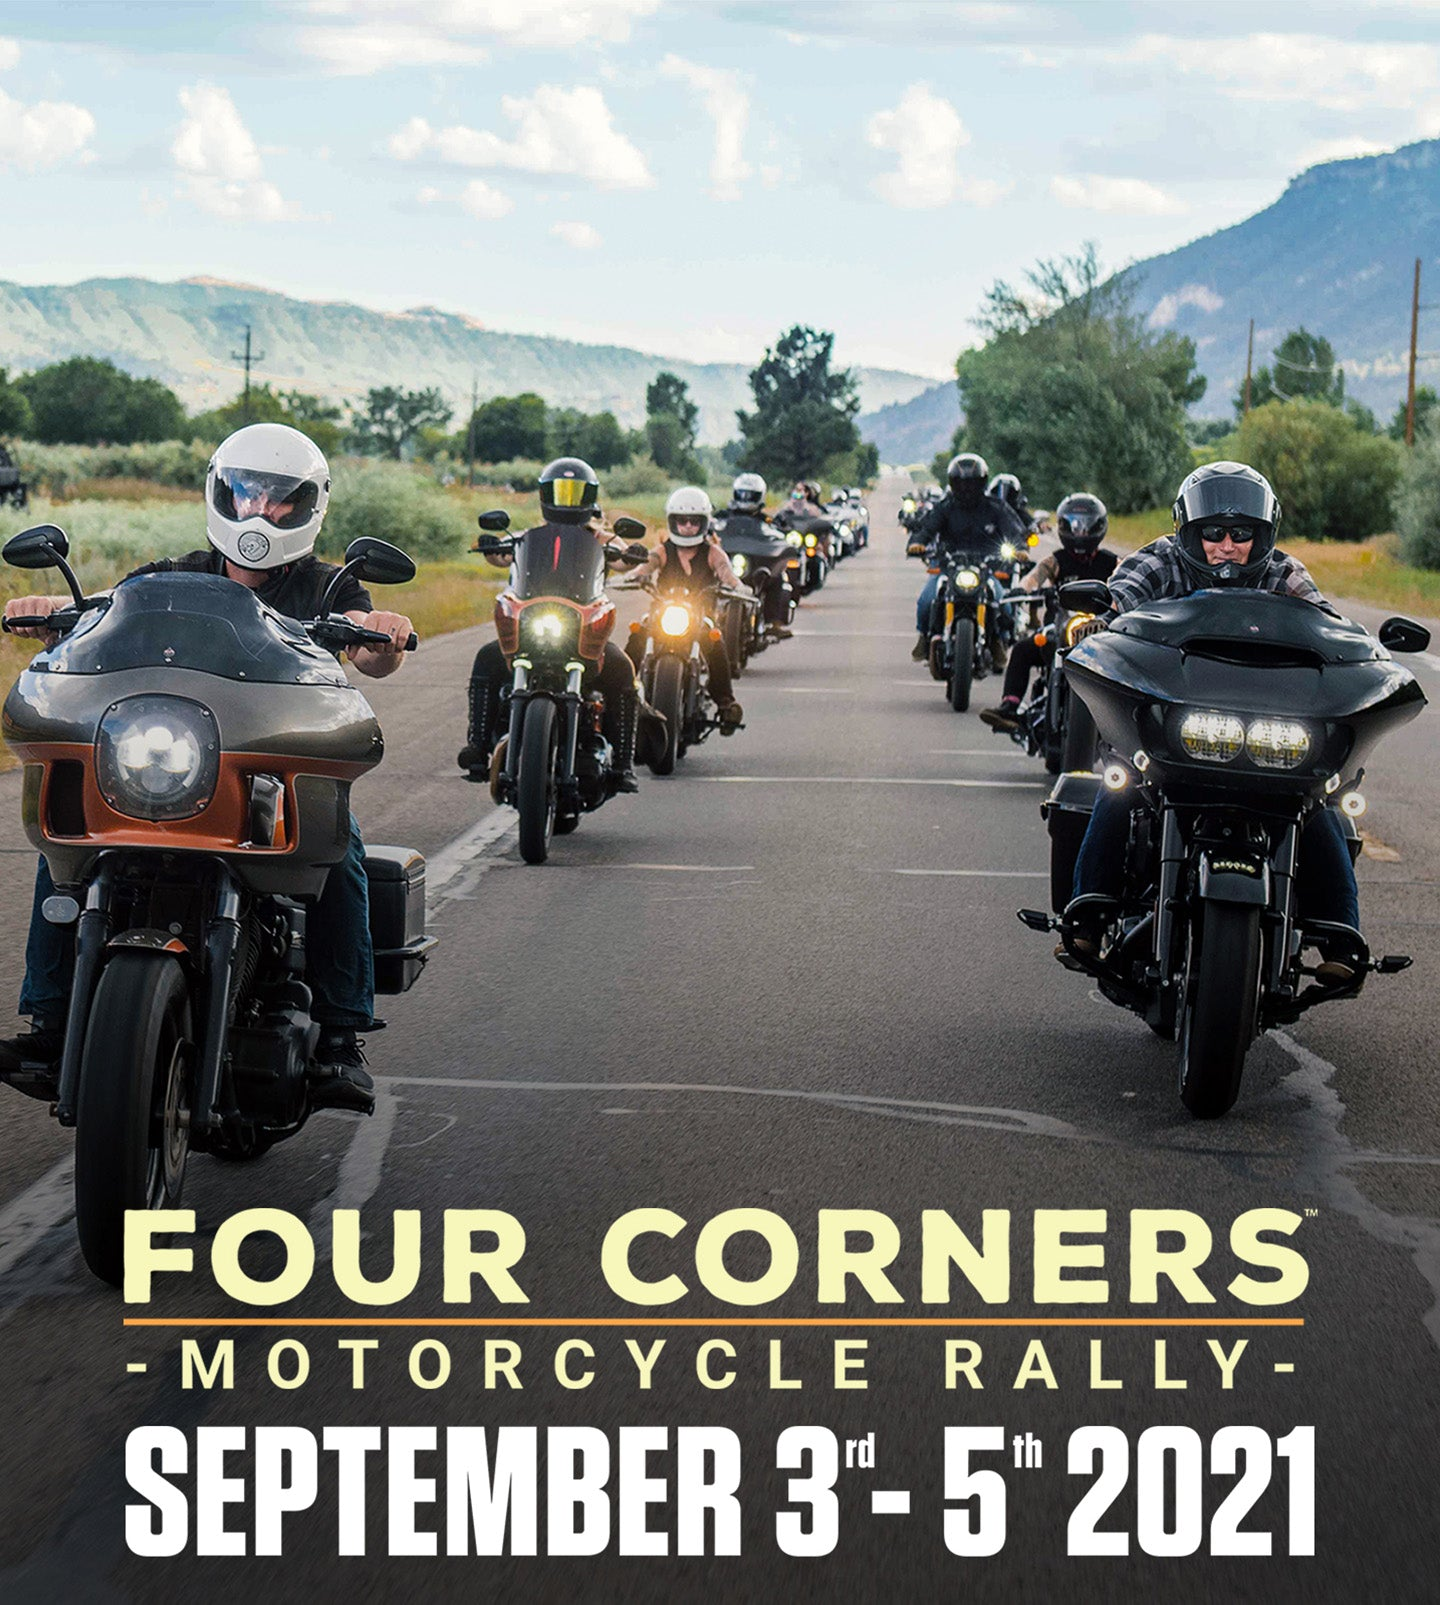 Four Corners Motorcycle Rally - September 3rd-5th 2021